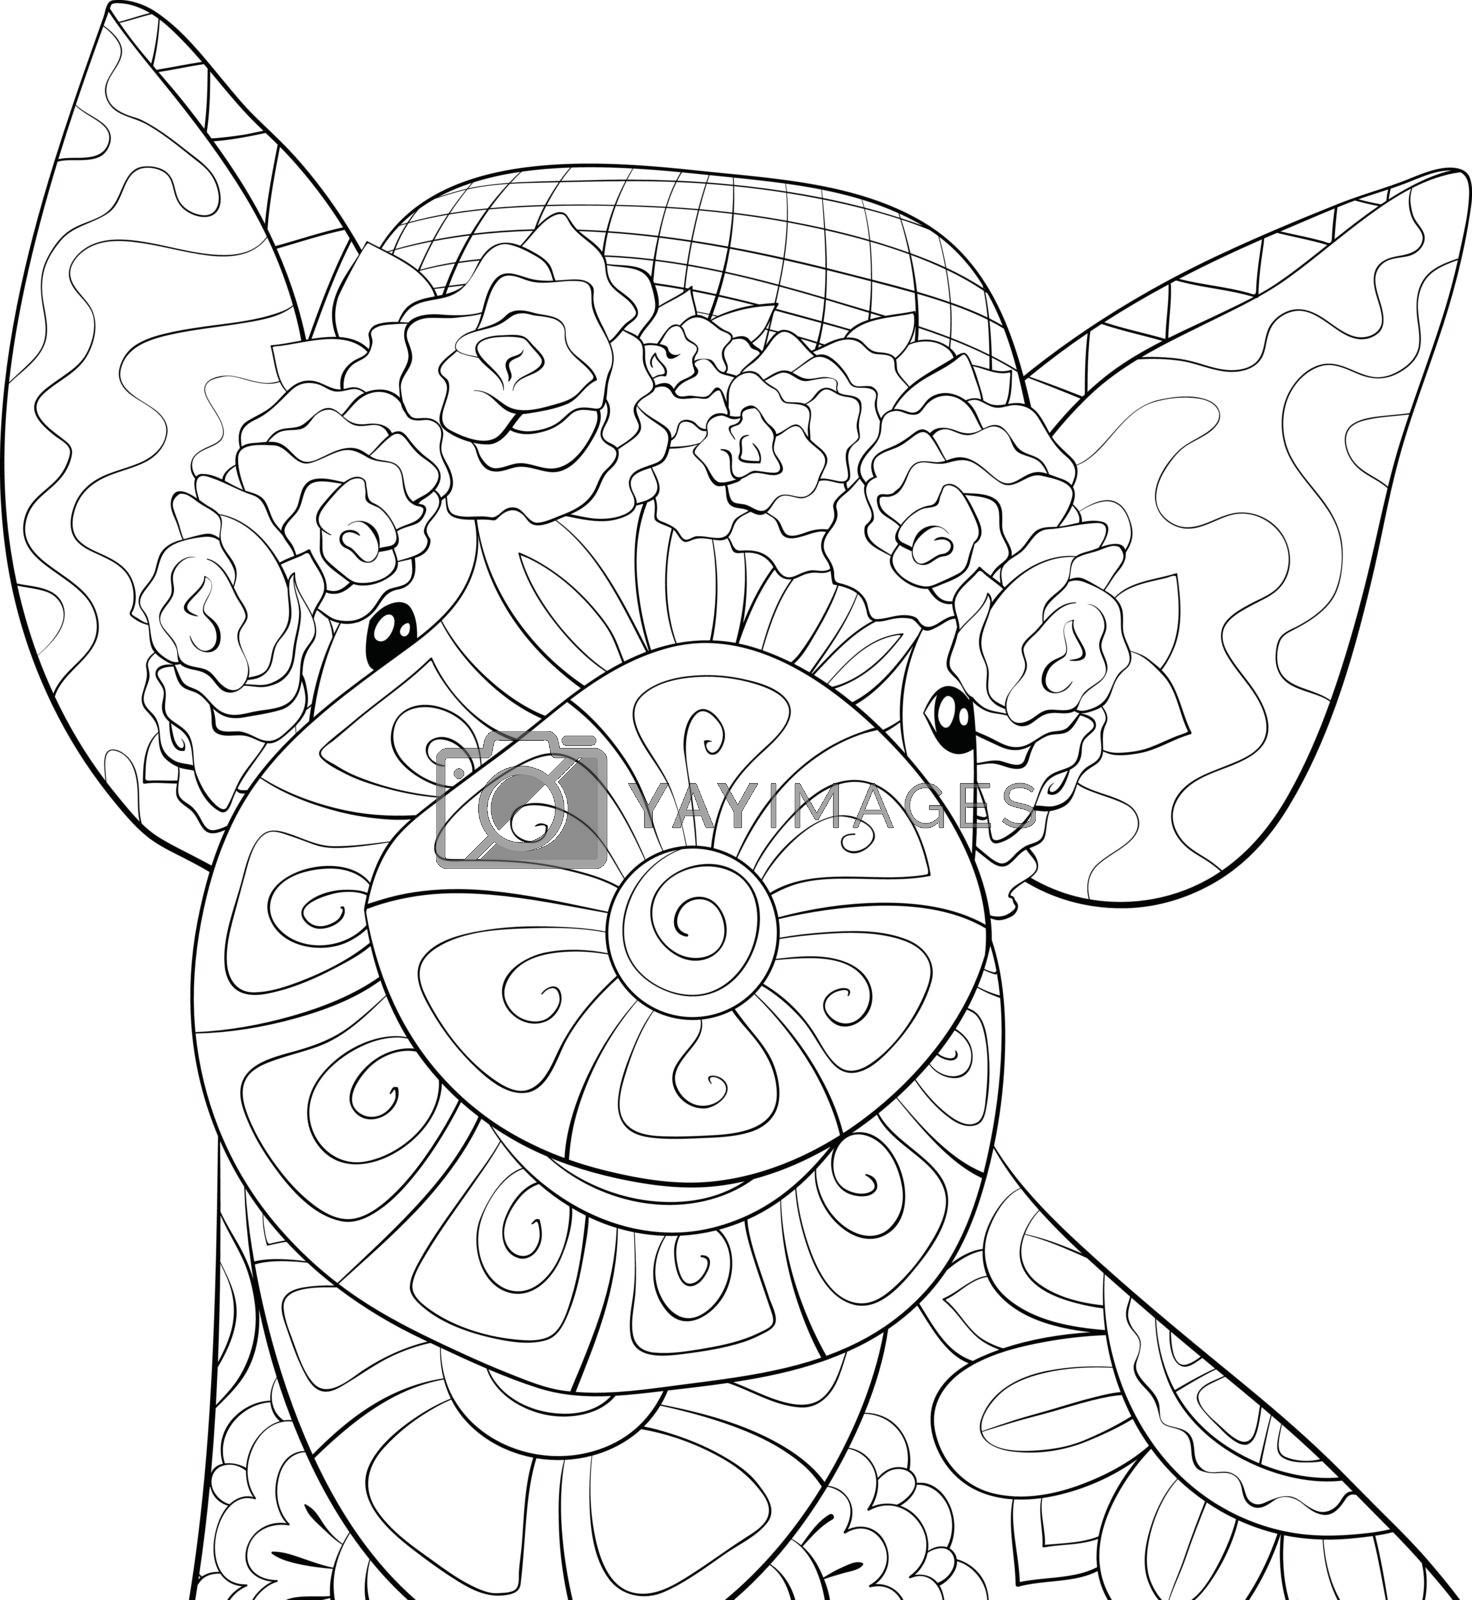 Adult coloring book,page a cute pig wearing a hat with rosses im by Nonuzza